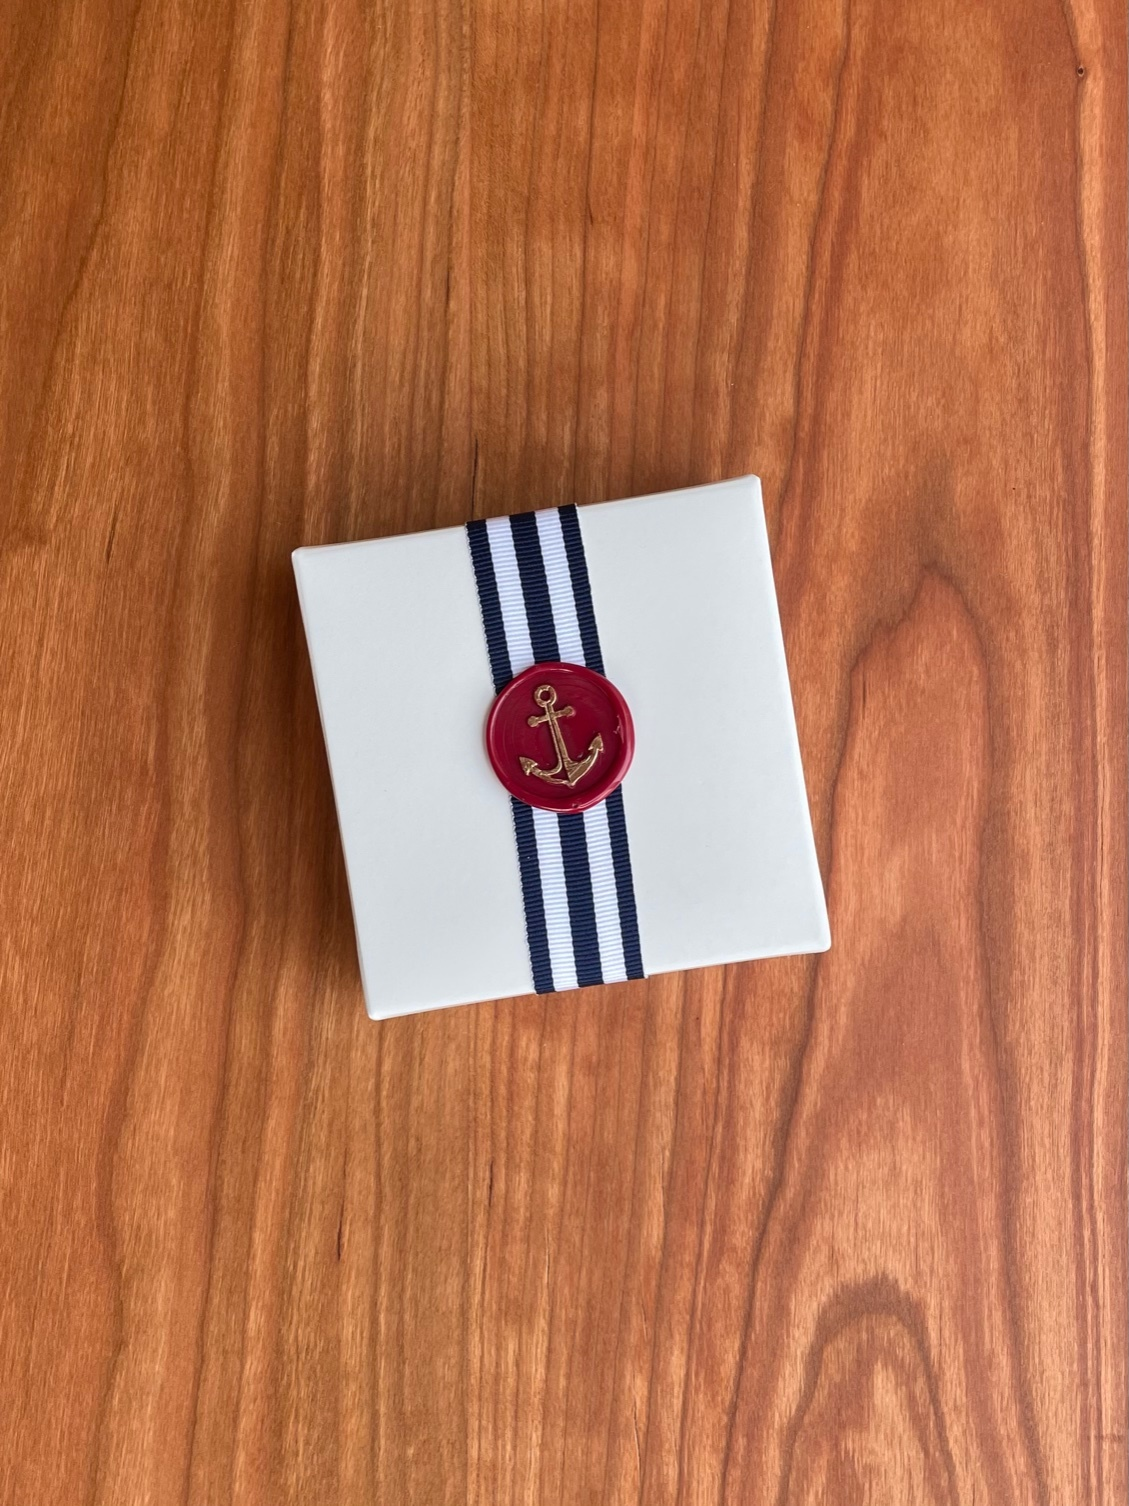 Anchor Almond Butter Toffee Gift Box, 2.5 oz.-1